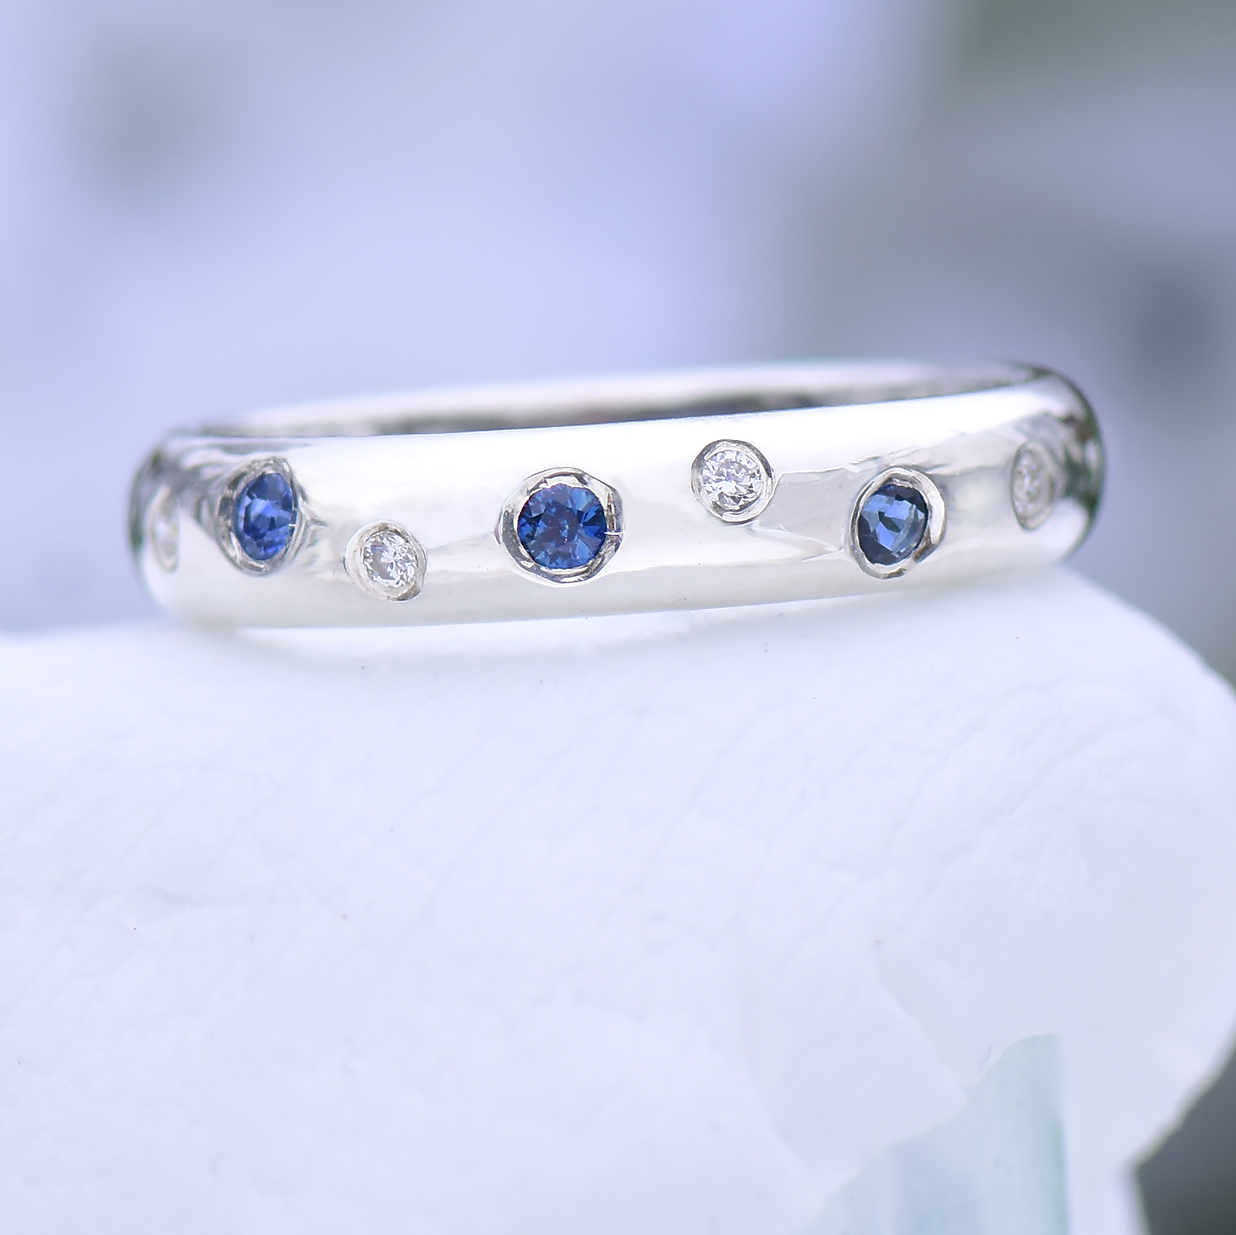 It is just an image of Sterling Silver Blue Sapphire and Fair Trade Diamond Ring